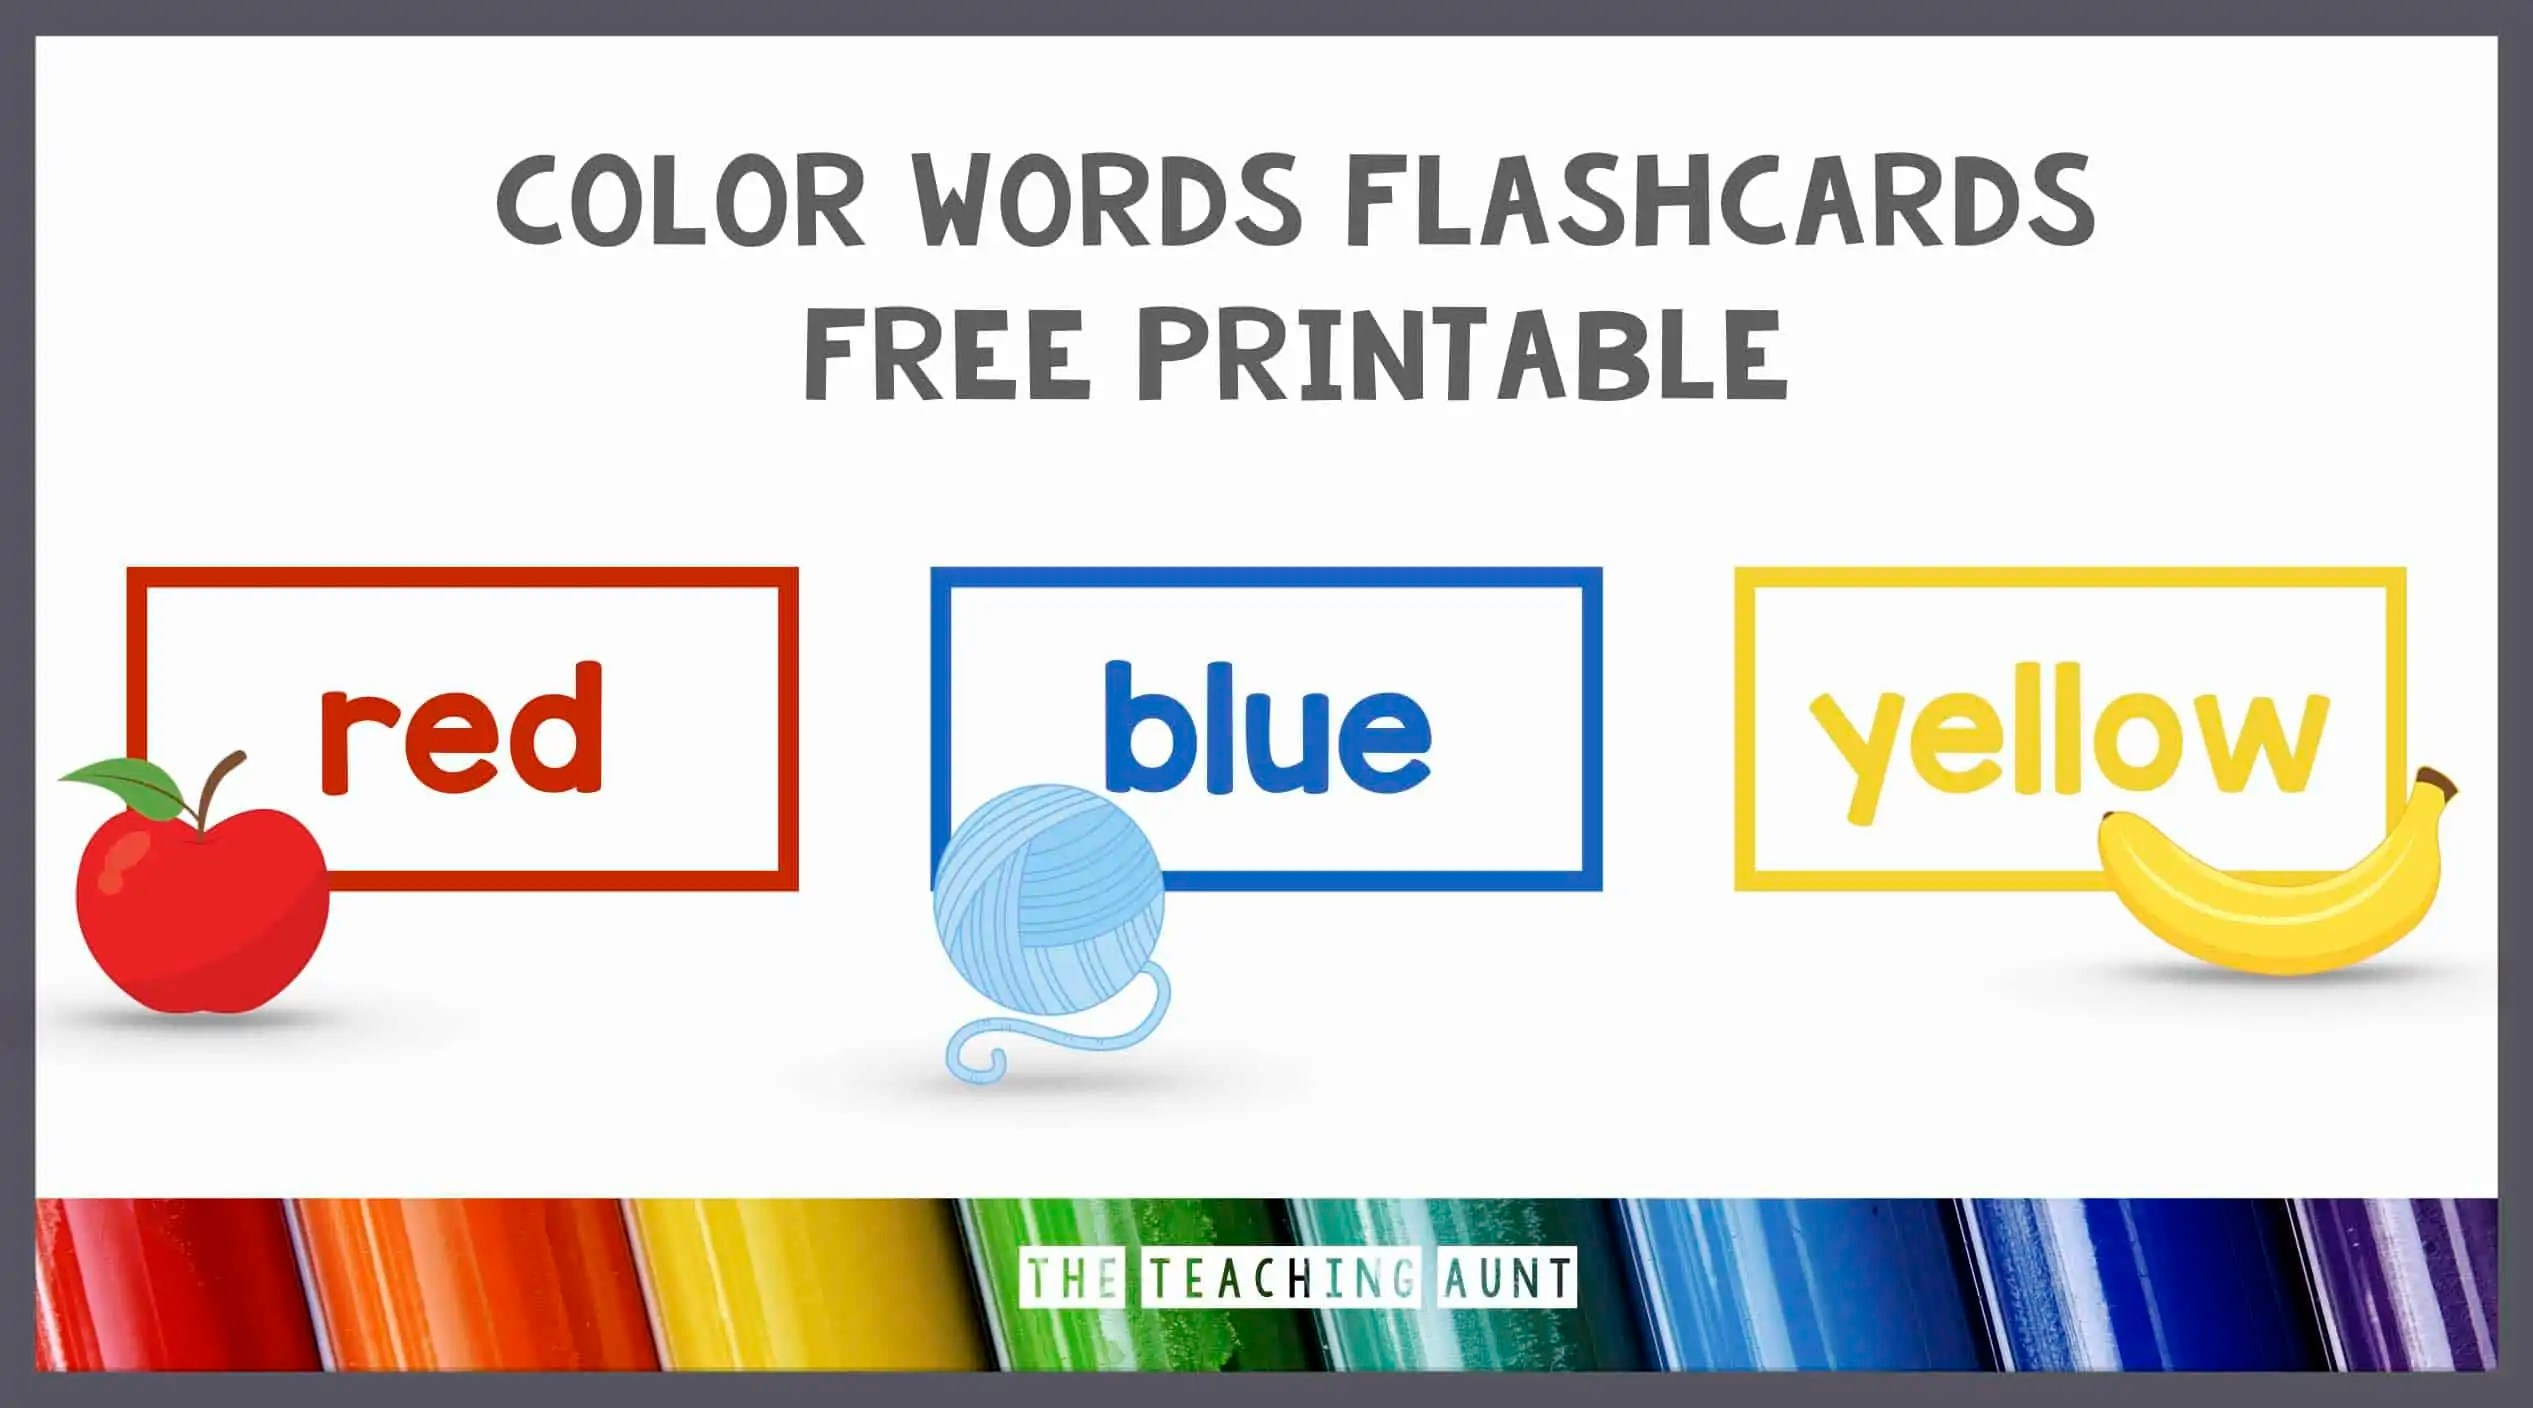 Color Words Flashcards Free Printable The Teaching Aunt